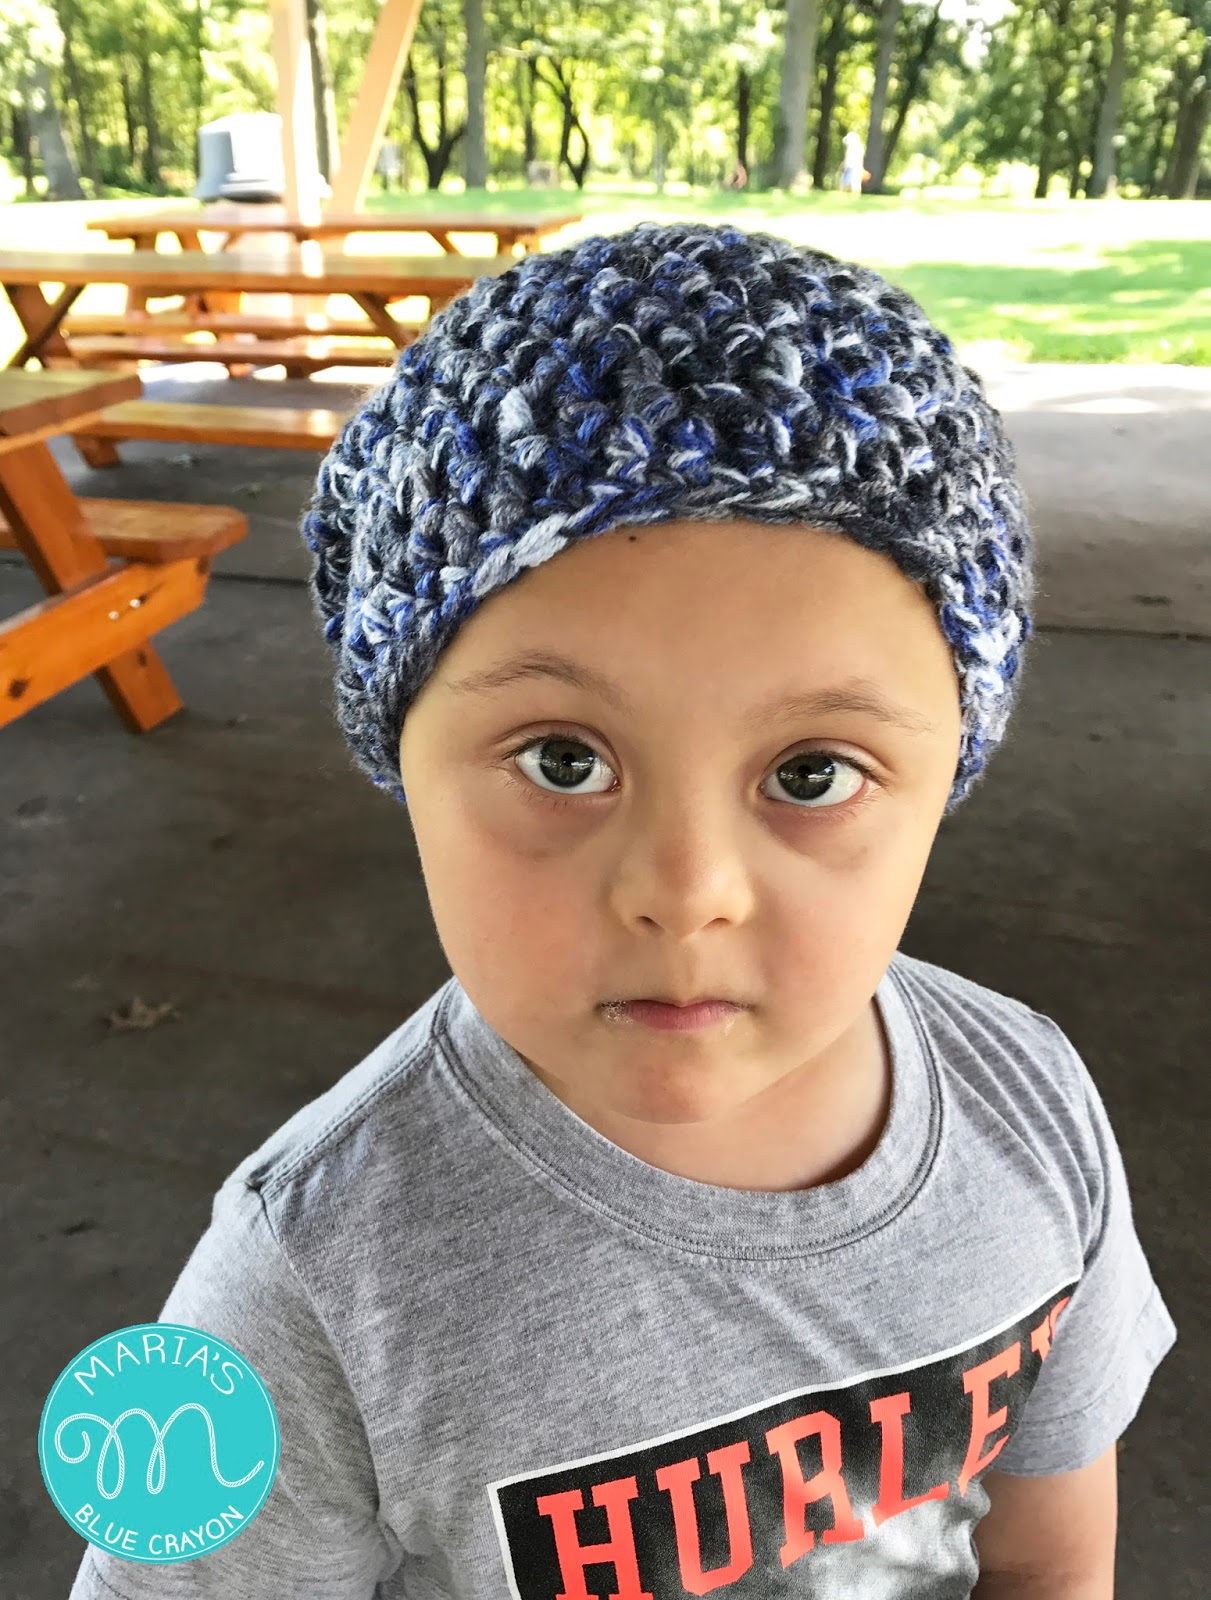 Trevor Slouchy Beanie Crochet Pattern - Maria\'s Blue Crayon